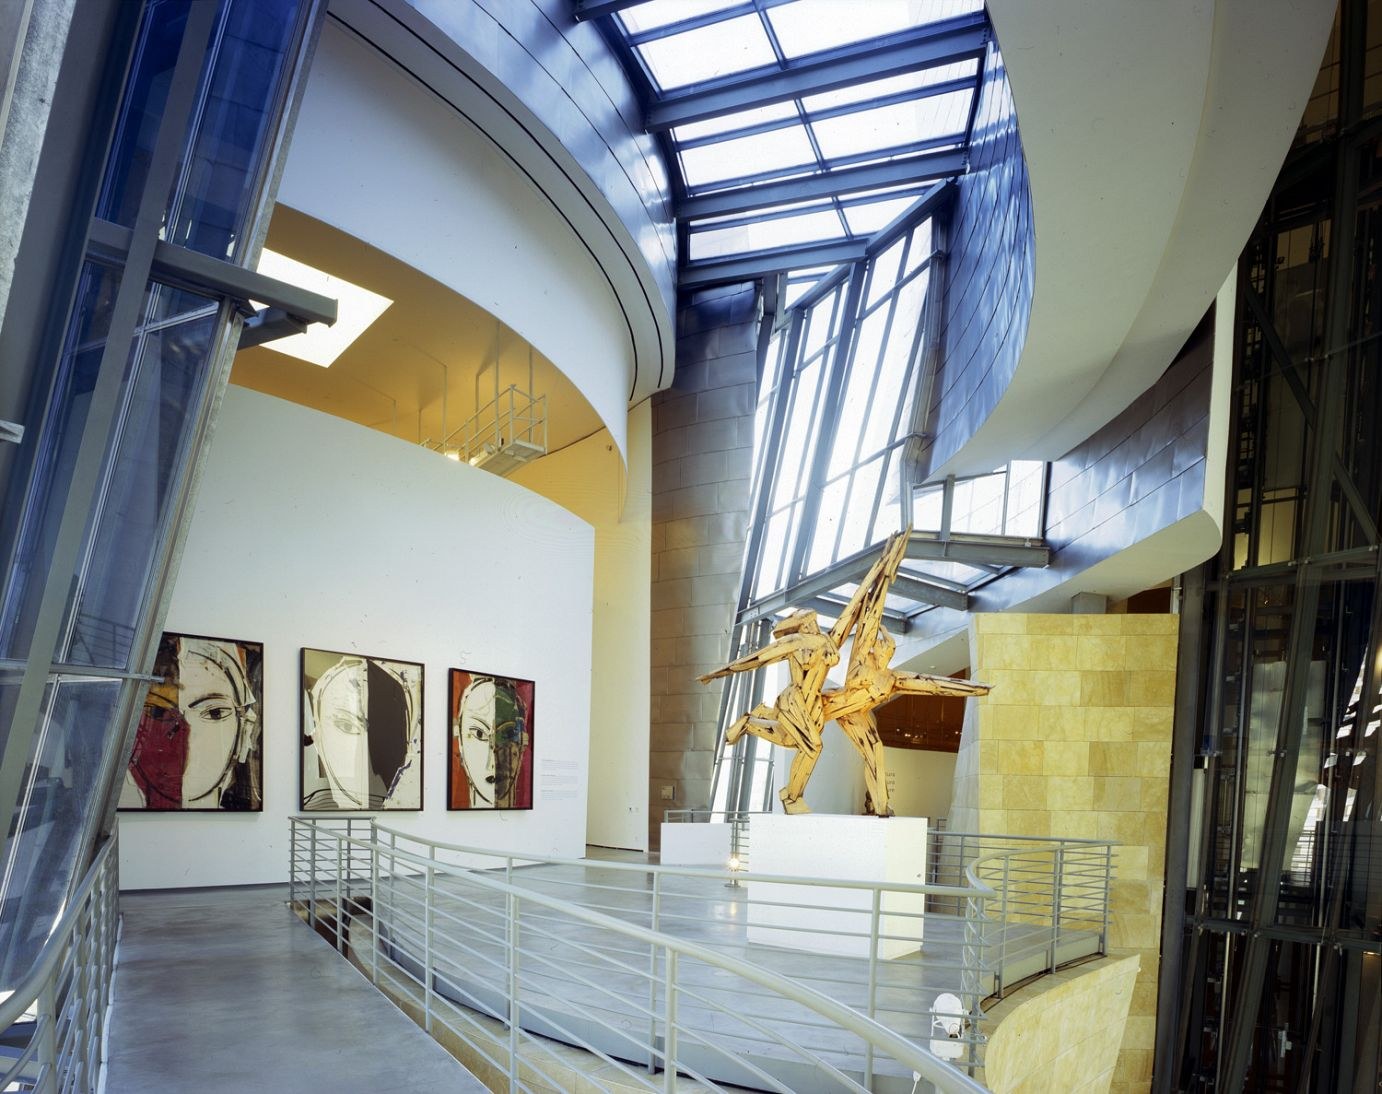 Inside the building, Manolo Valdés | Guggenheim Bilbao Museoa